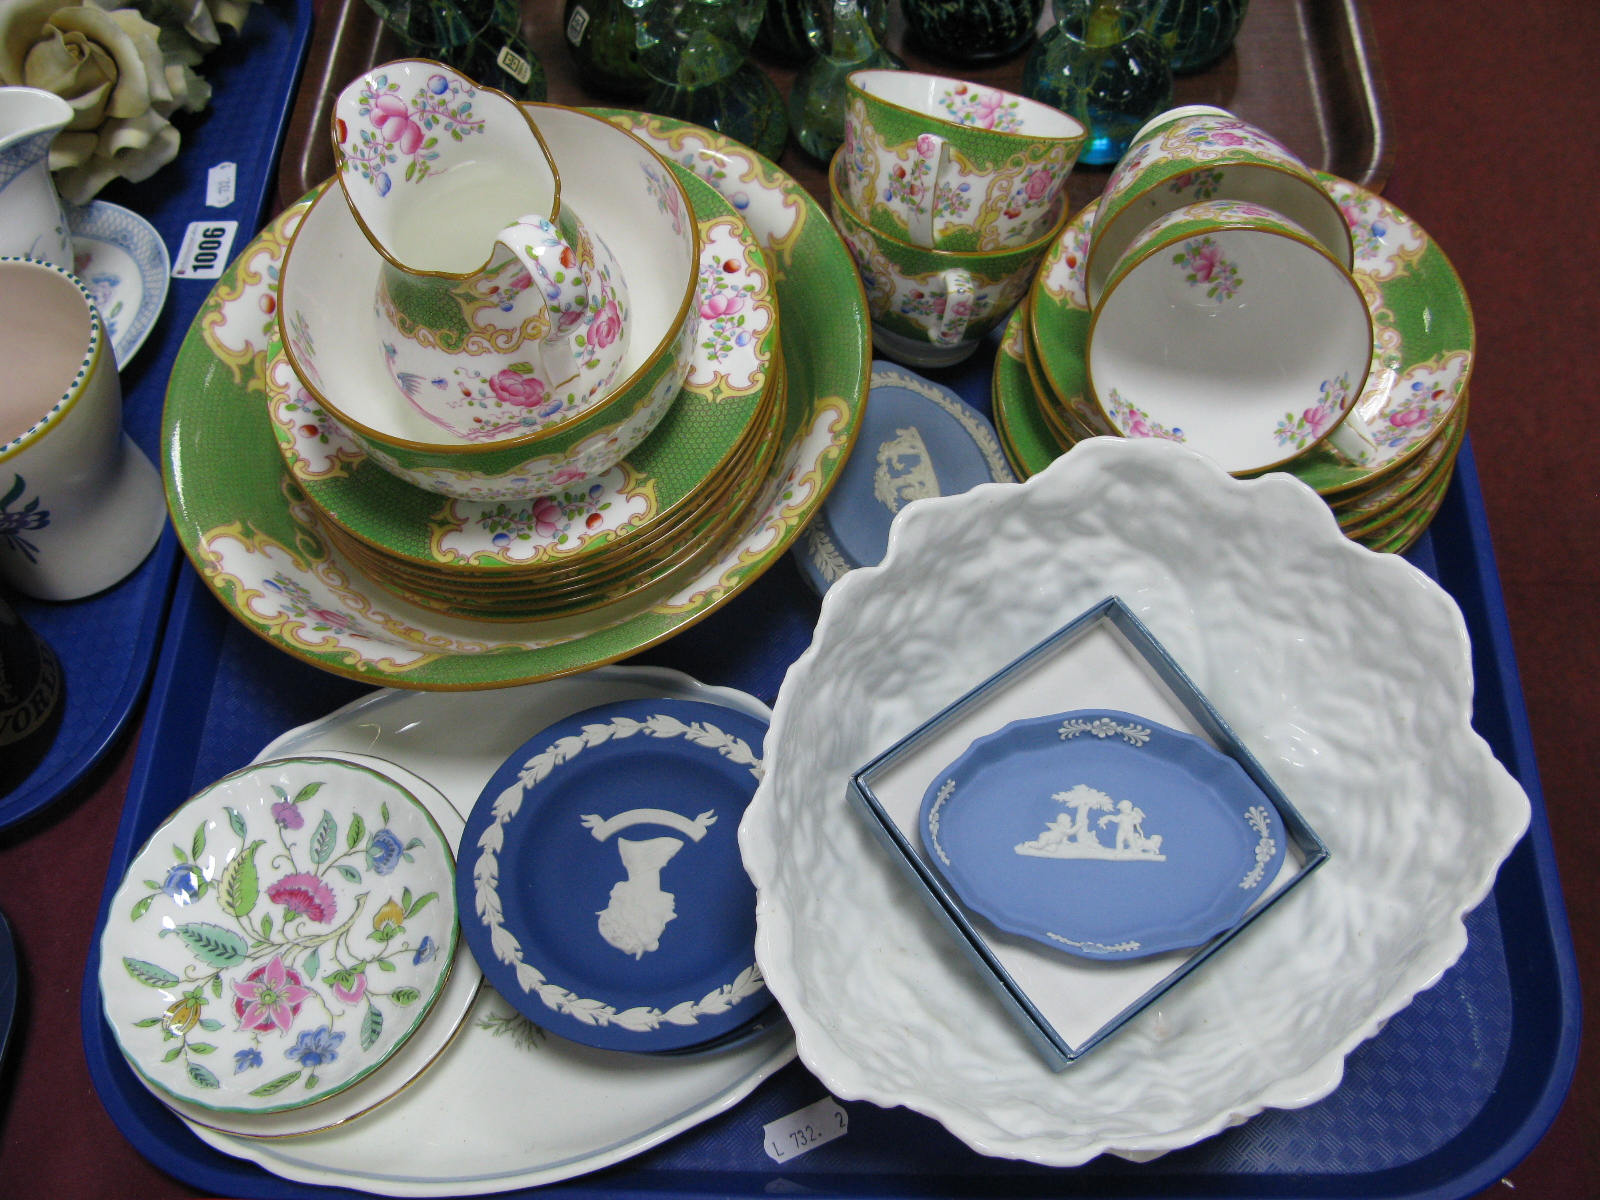 Lot 1010 - Minton Table Ware, Wedgwood, Jasper Ware, Coalport, cabbage bowl etc:- One Tray.